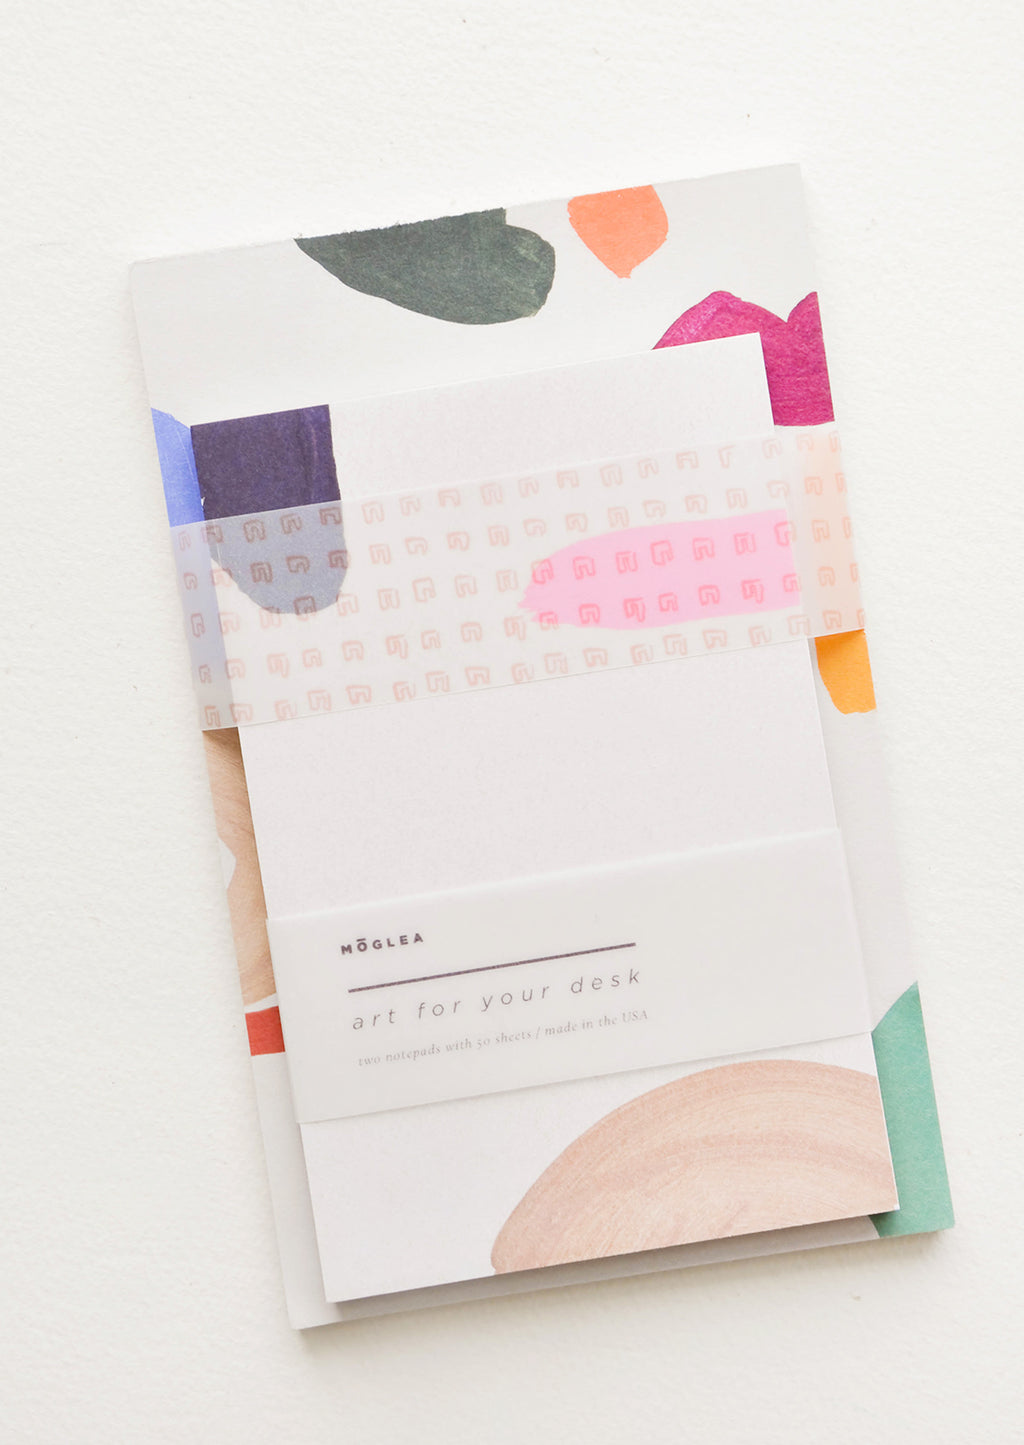 Brights Multi: Two stacked notepads wrapped with cellophane, decorated with colorful abstract shapes.